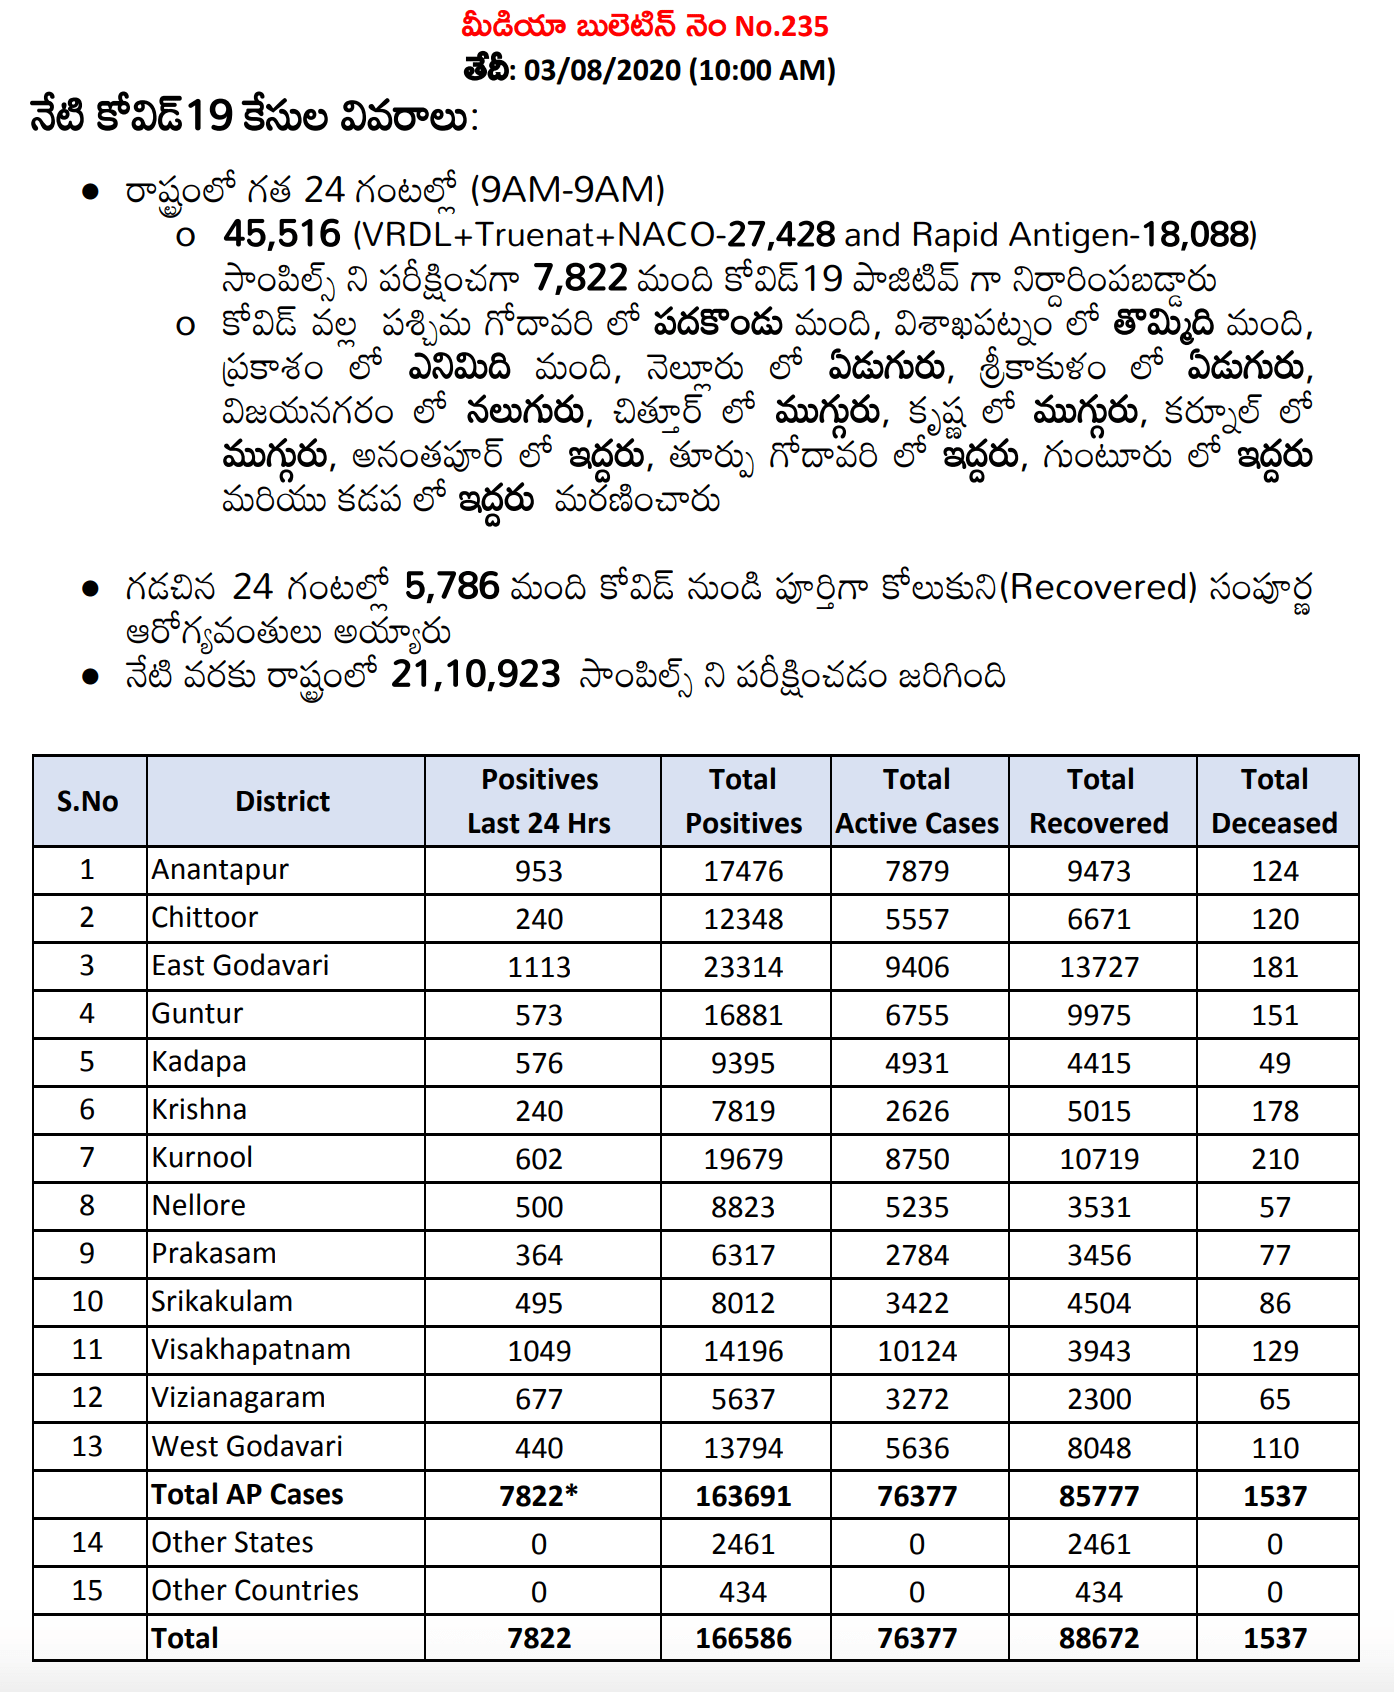 Andhra Pradesh Has 7,822 Positive Cases And The Total Positive Cases In The State Increased To 166,586 As Of 3rd August 10 AM